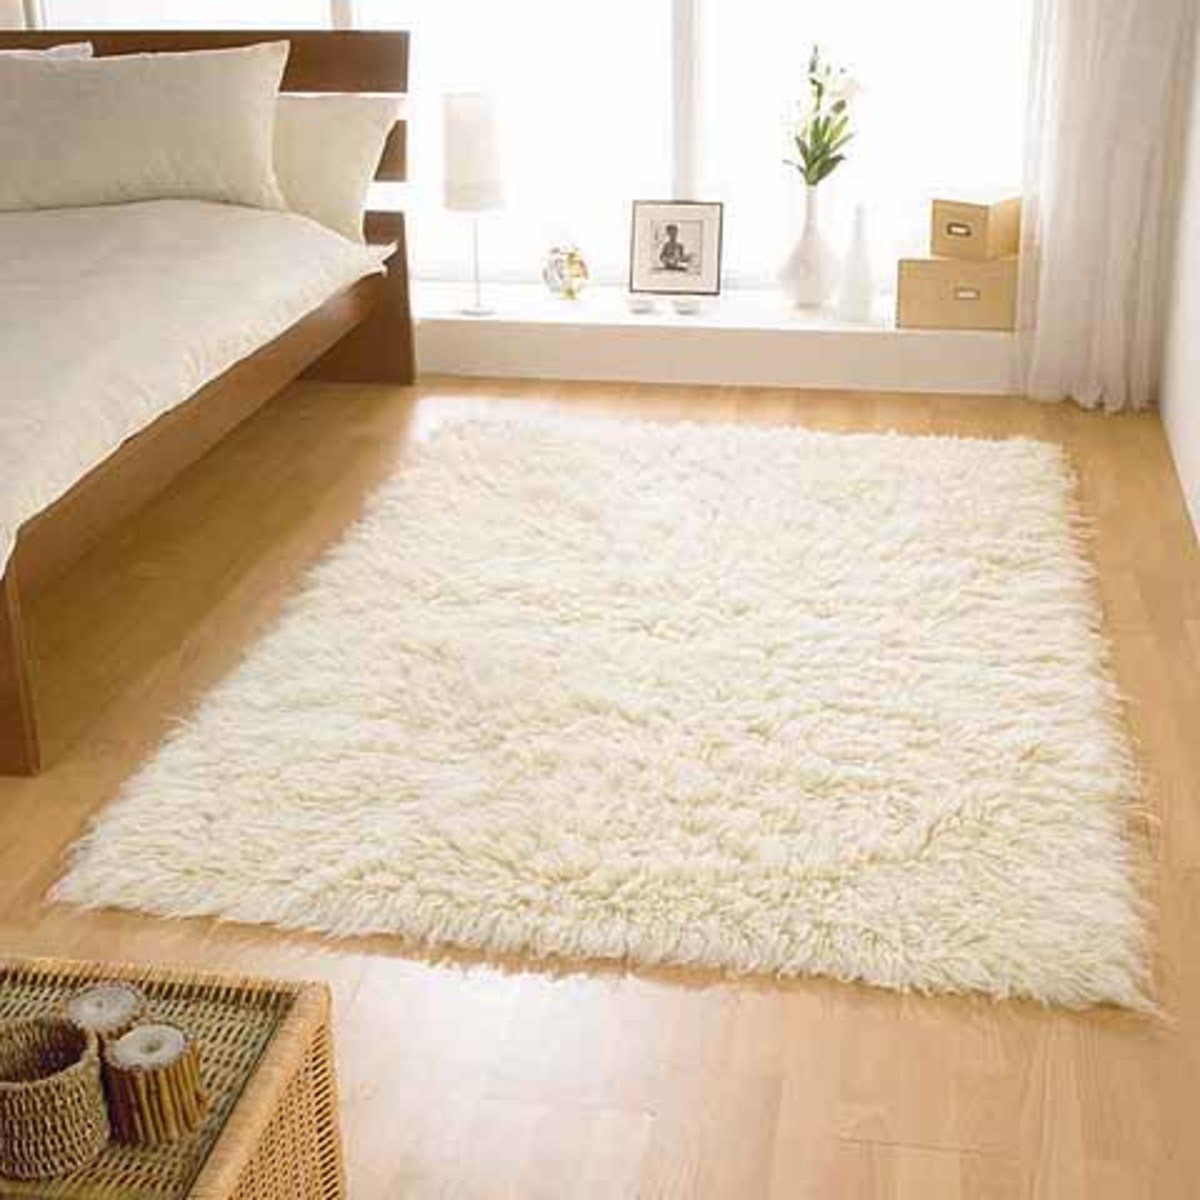 Rugs USA - The real Rugs USA review